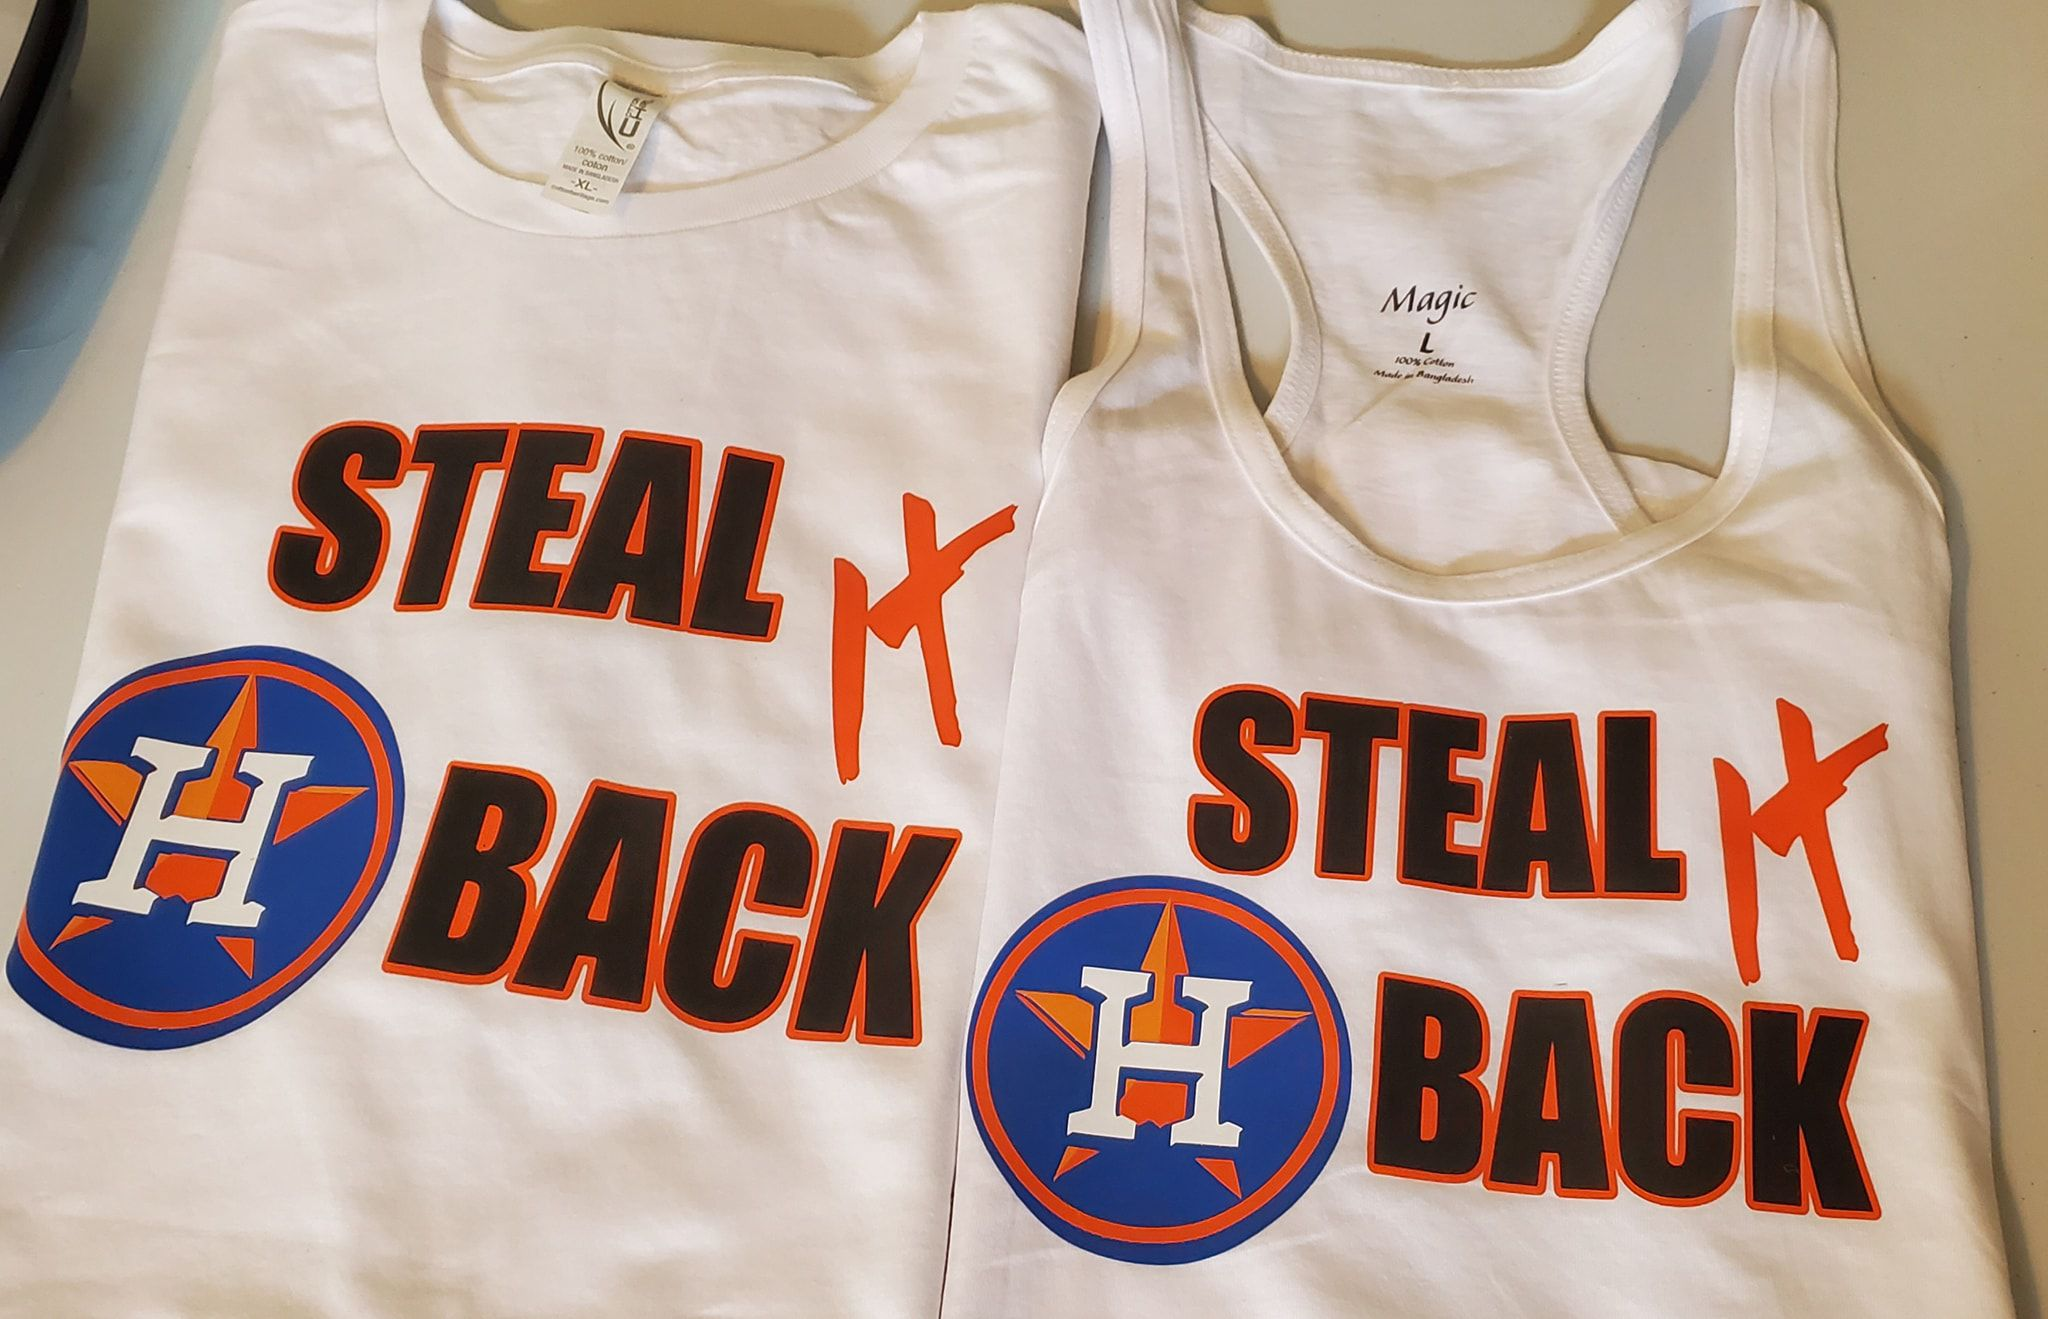 'Steal it back:' Check out the creative swag these proud Astros fans are showing off